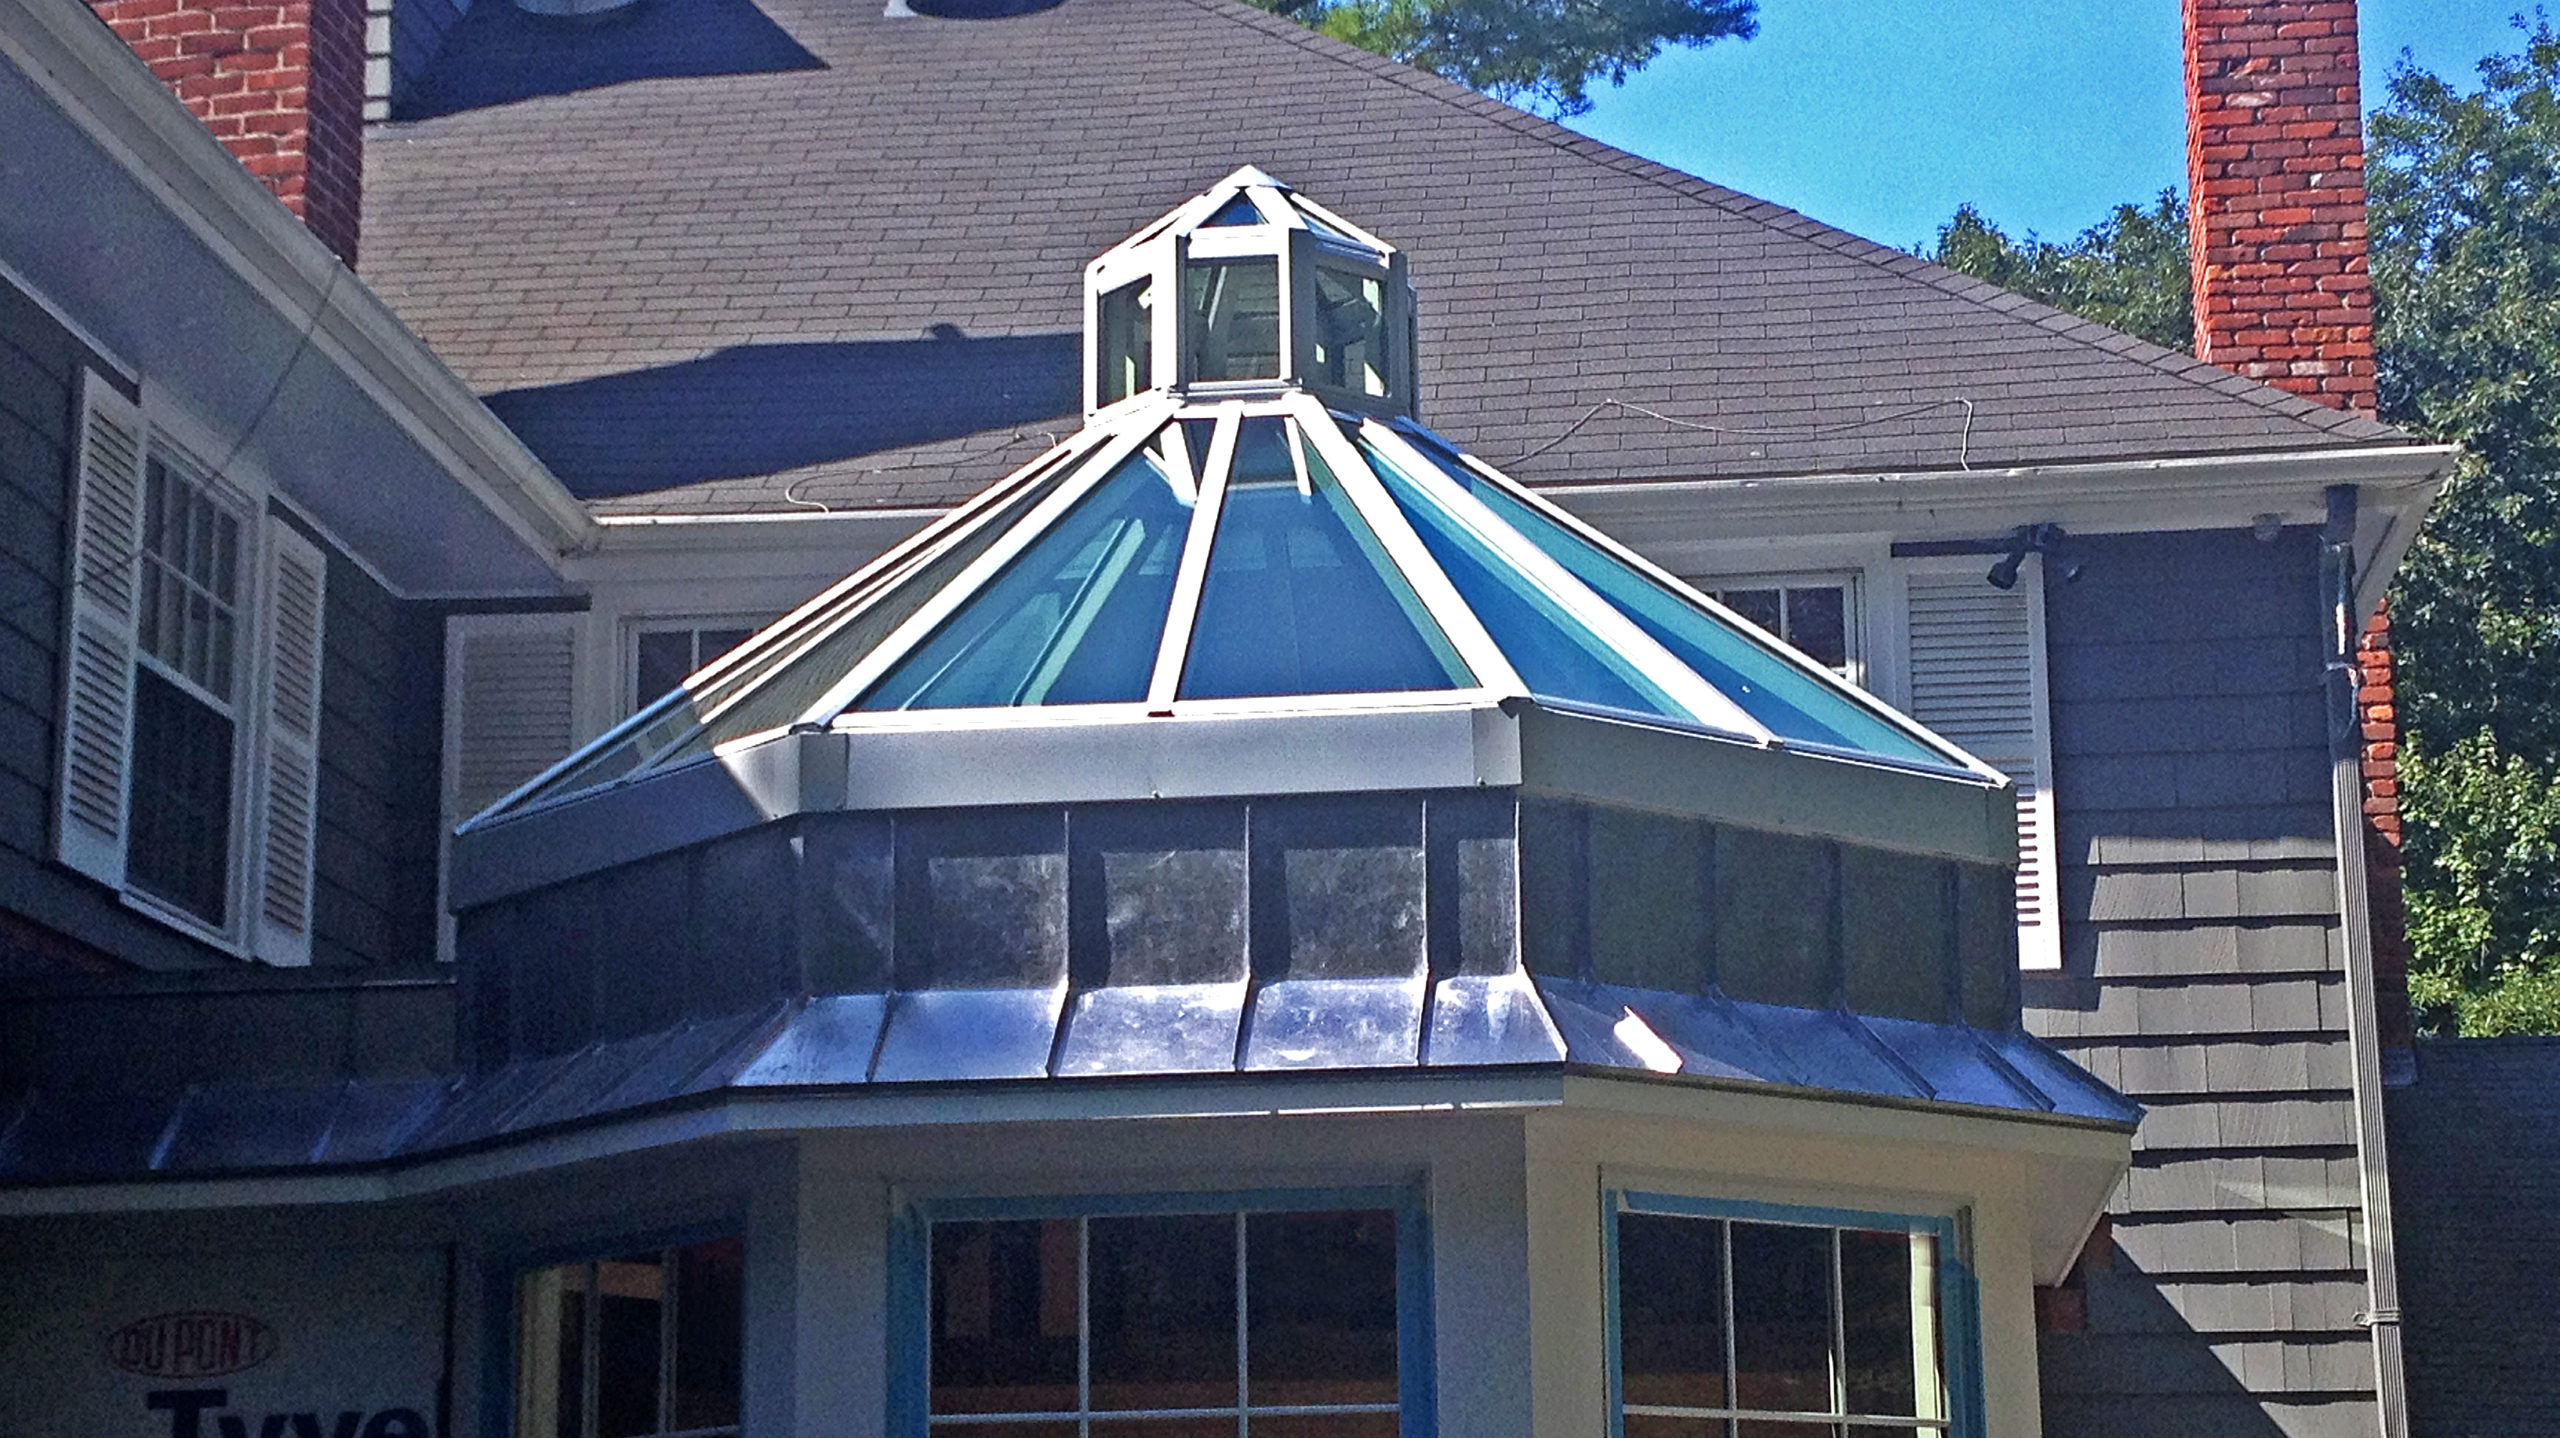 Octagonal skylight with lantern.